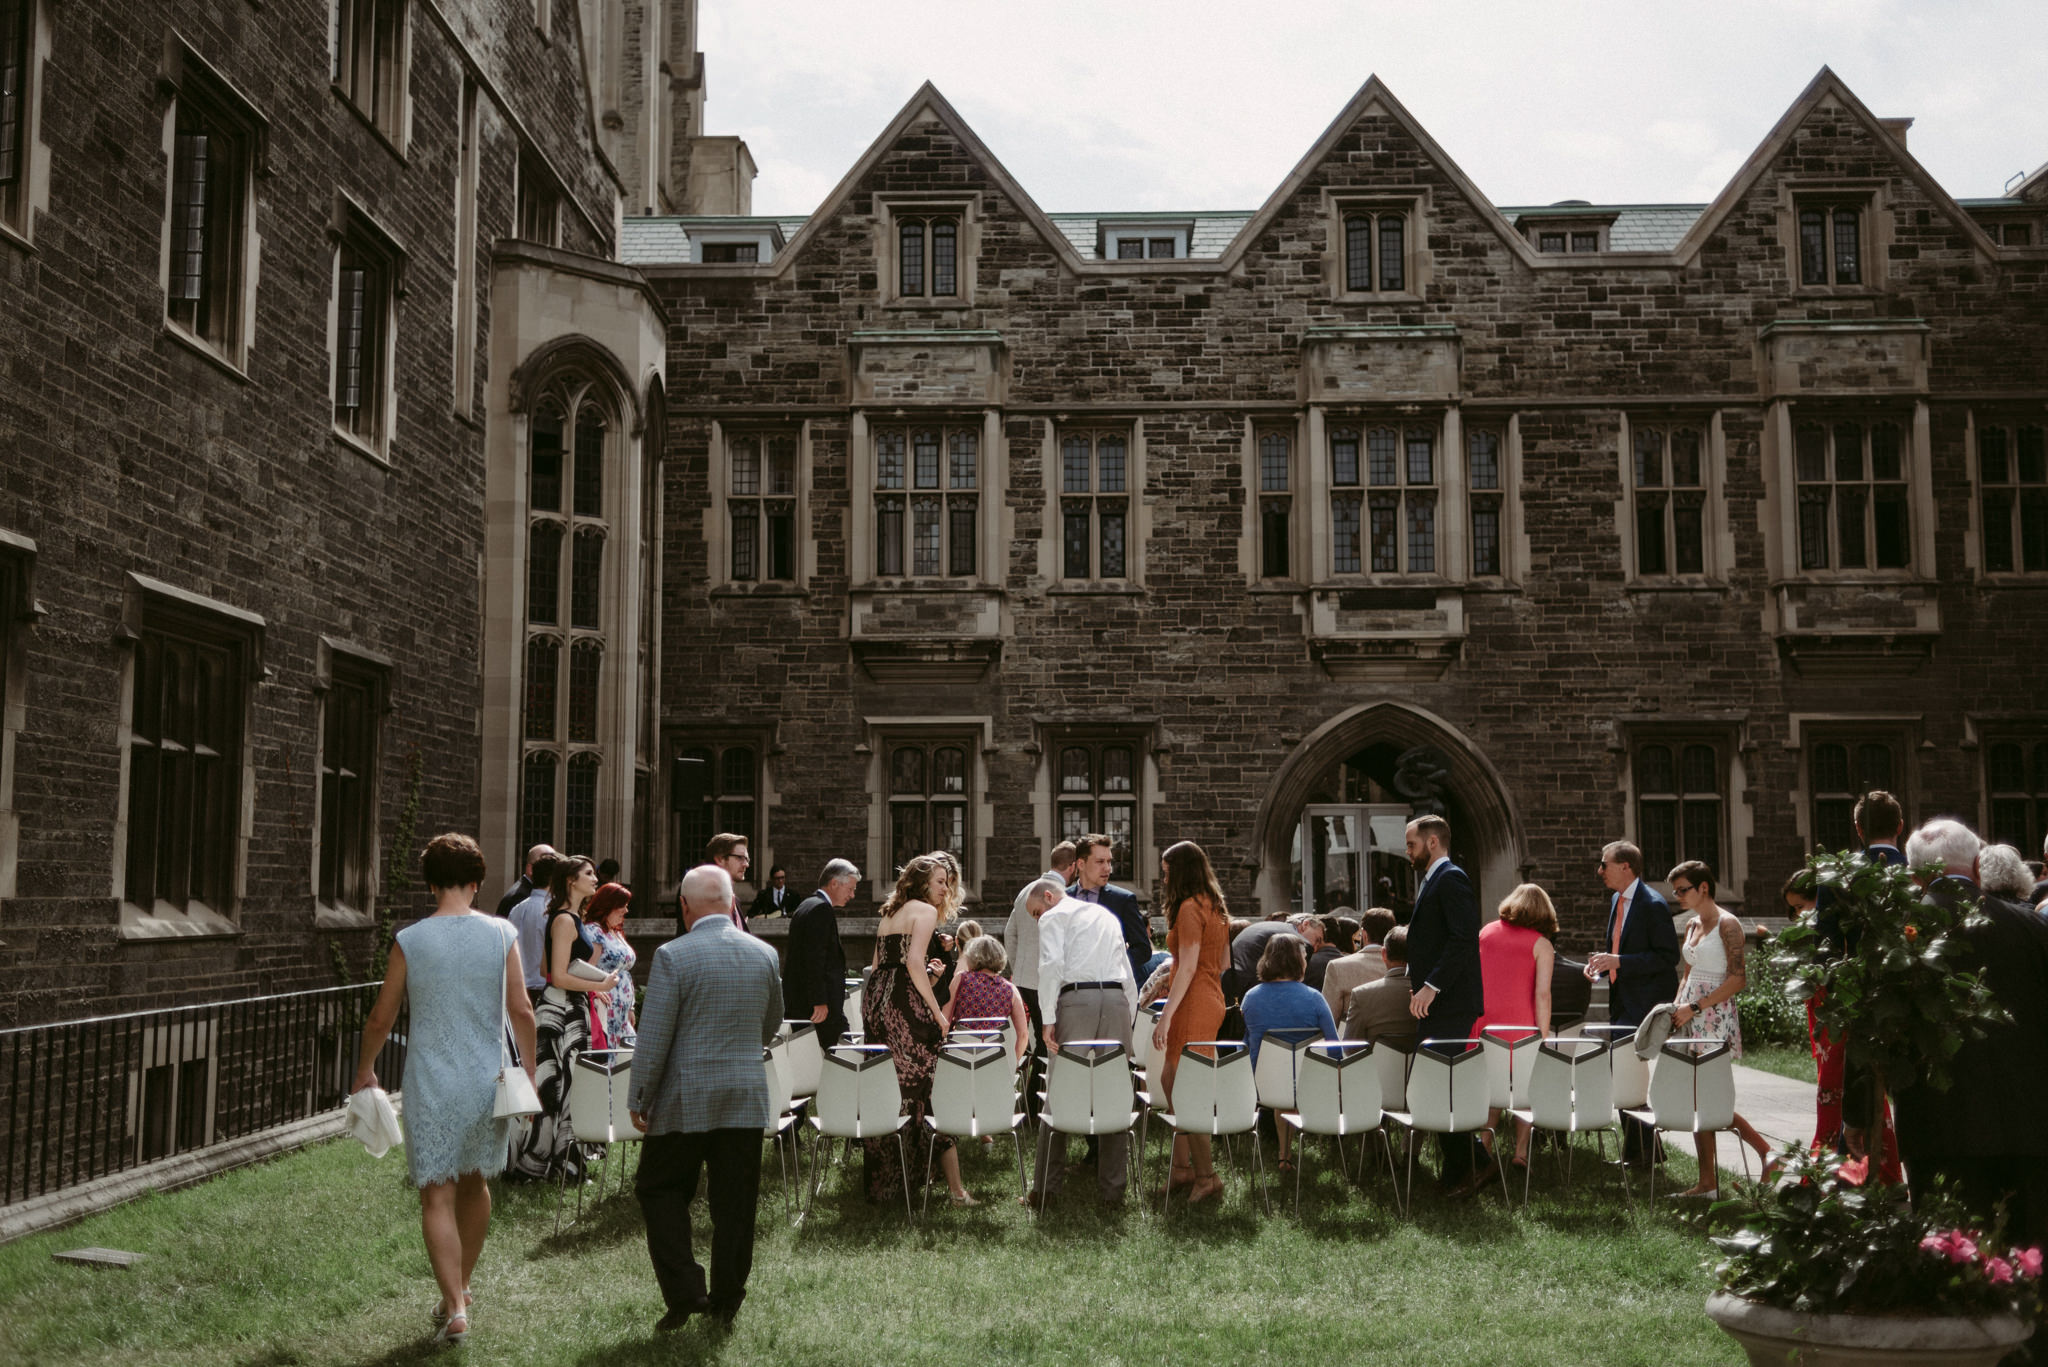 Hart House Wedding ceremony in courtyard